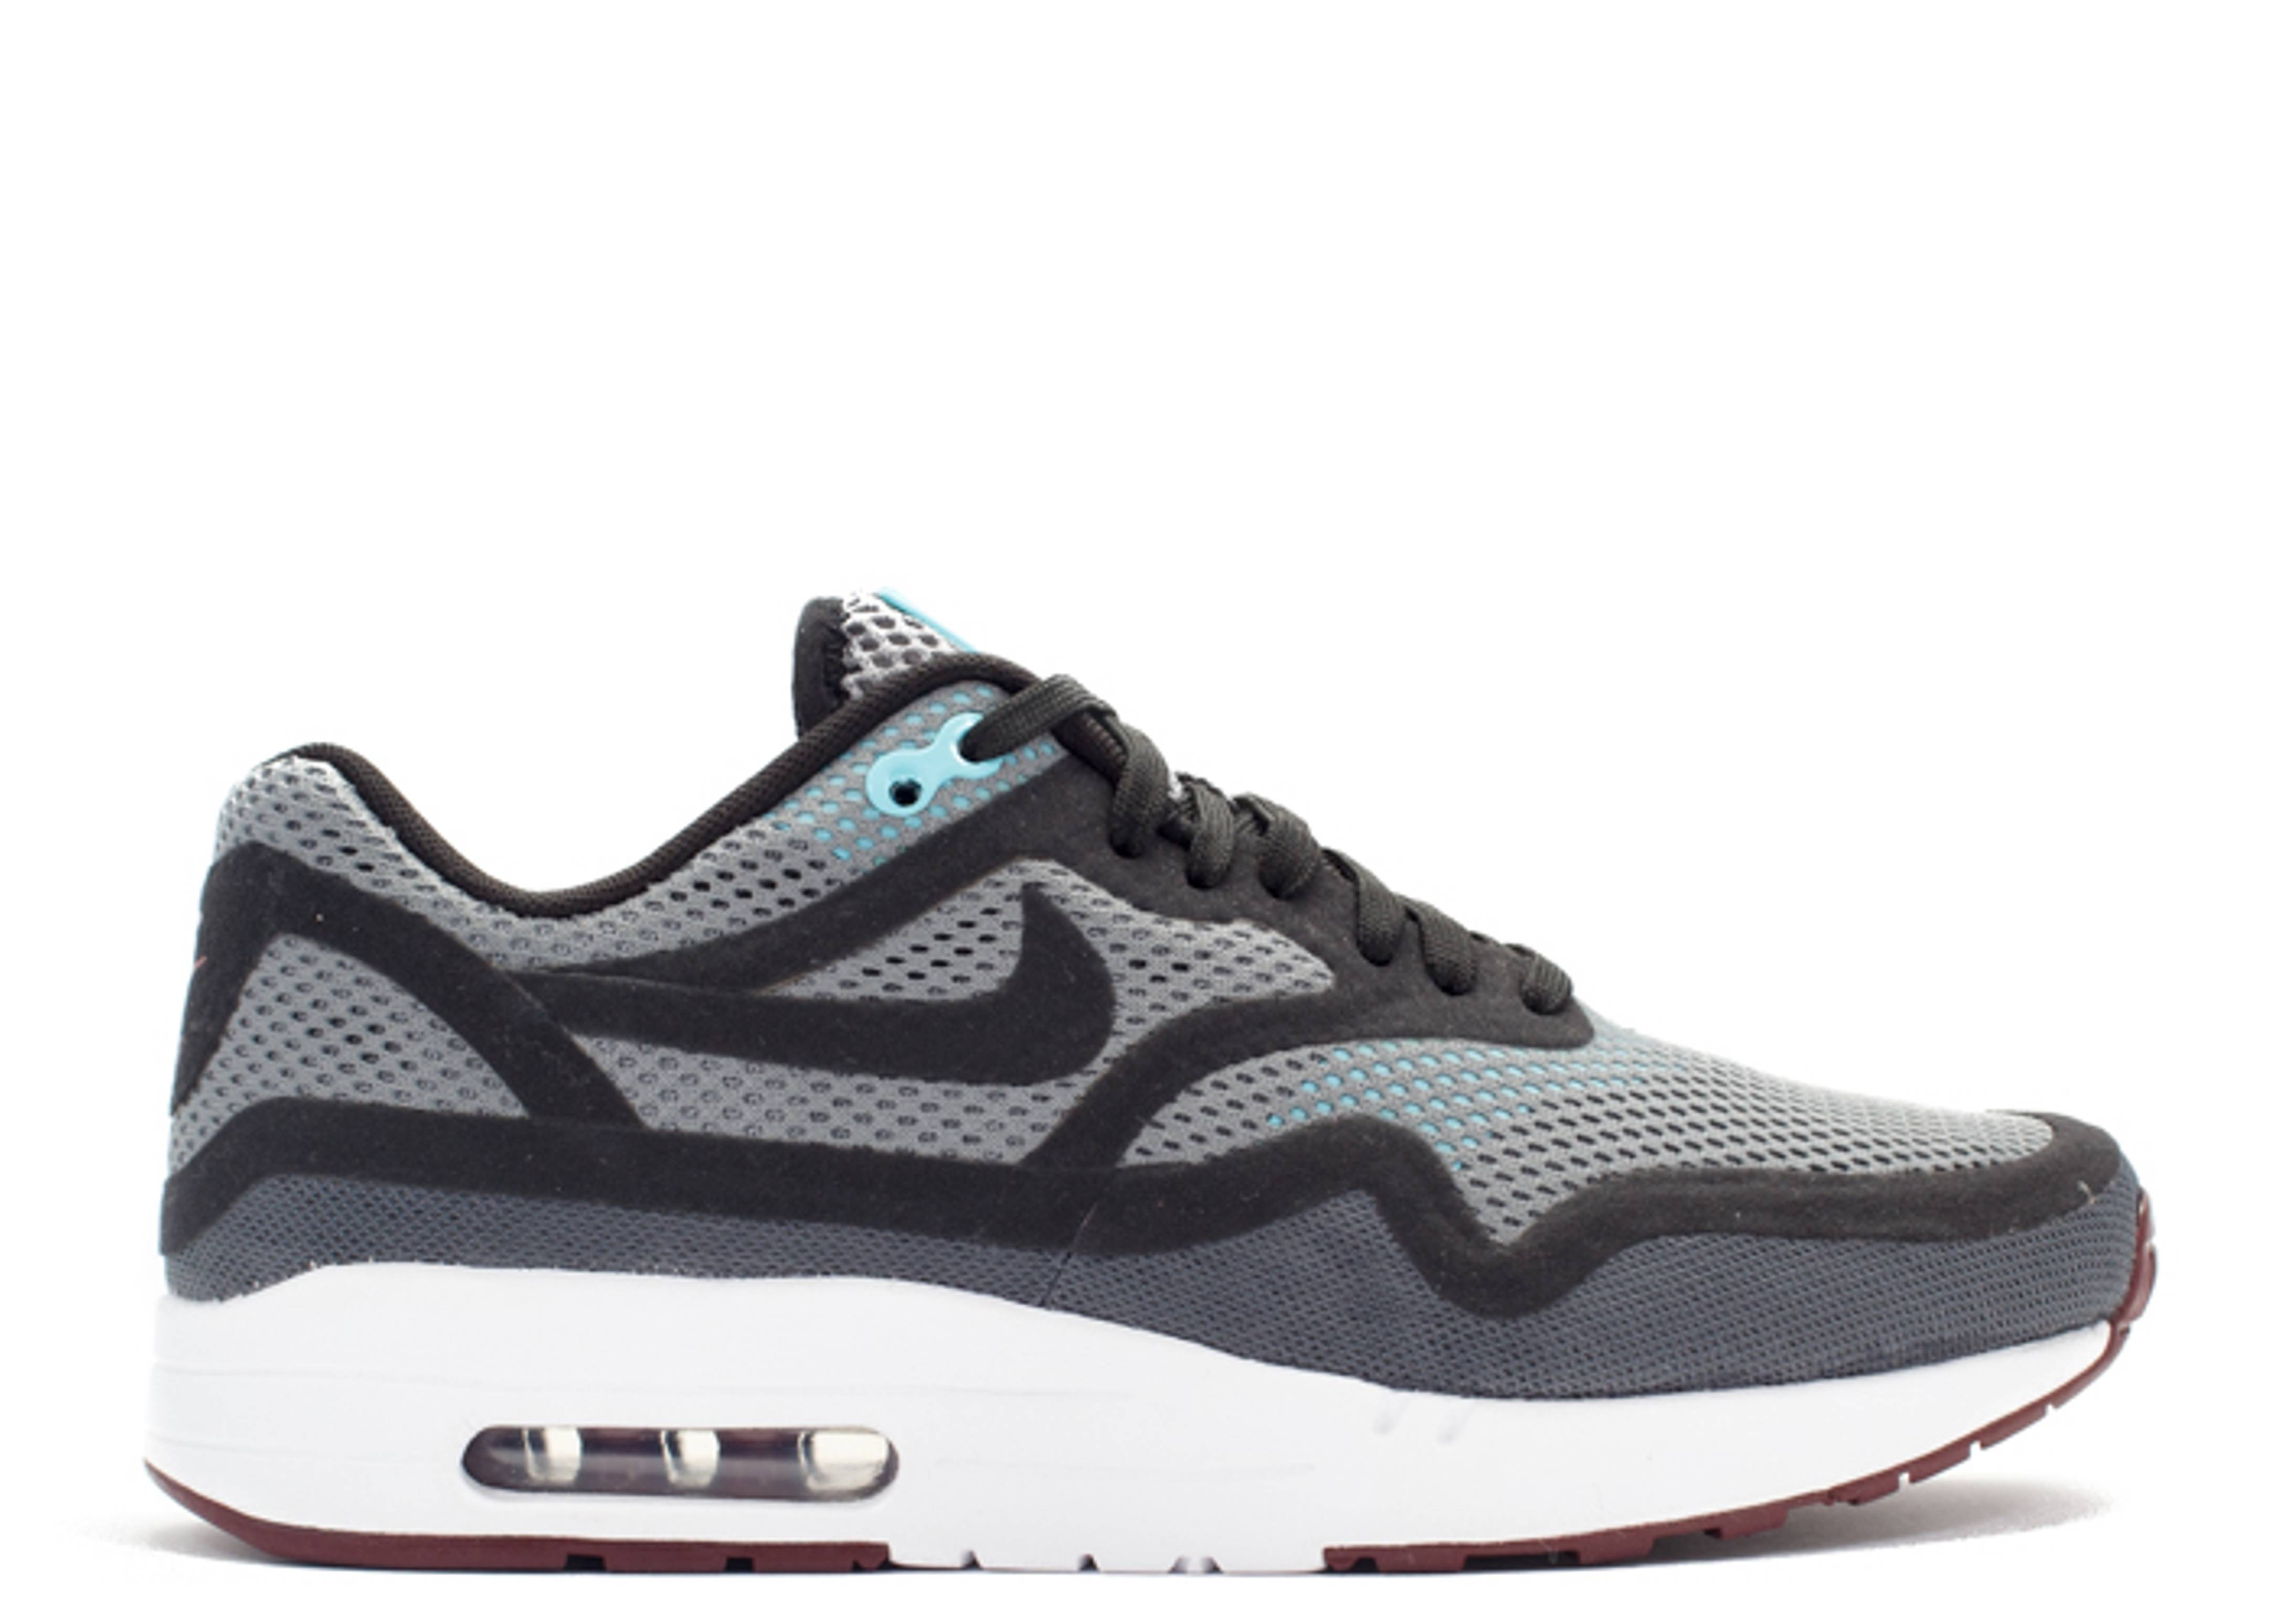 w's air max 1 br